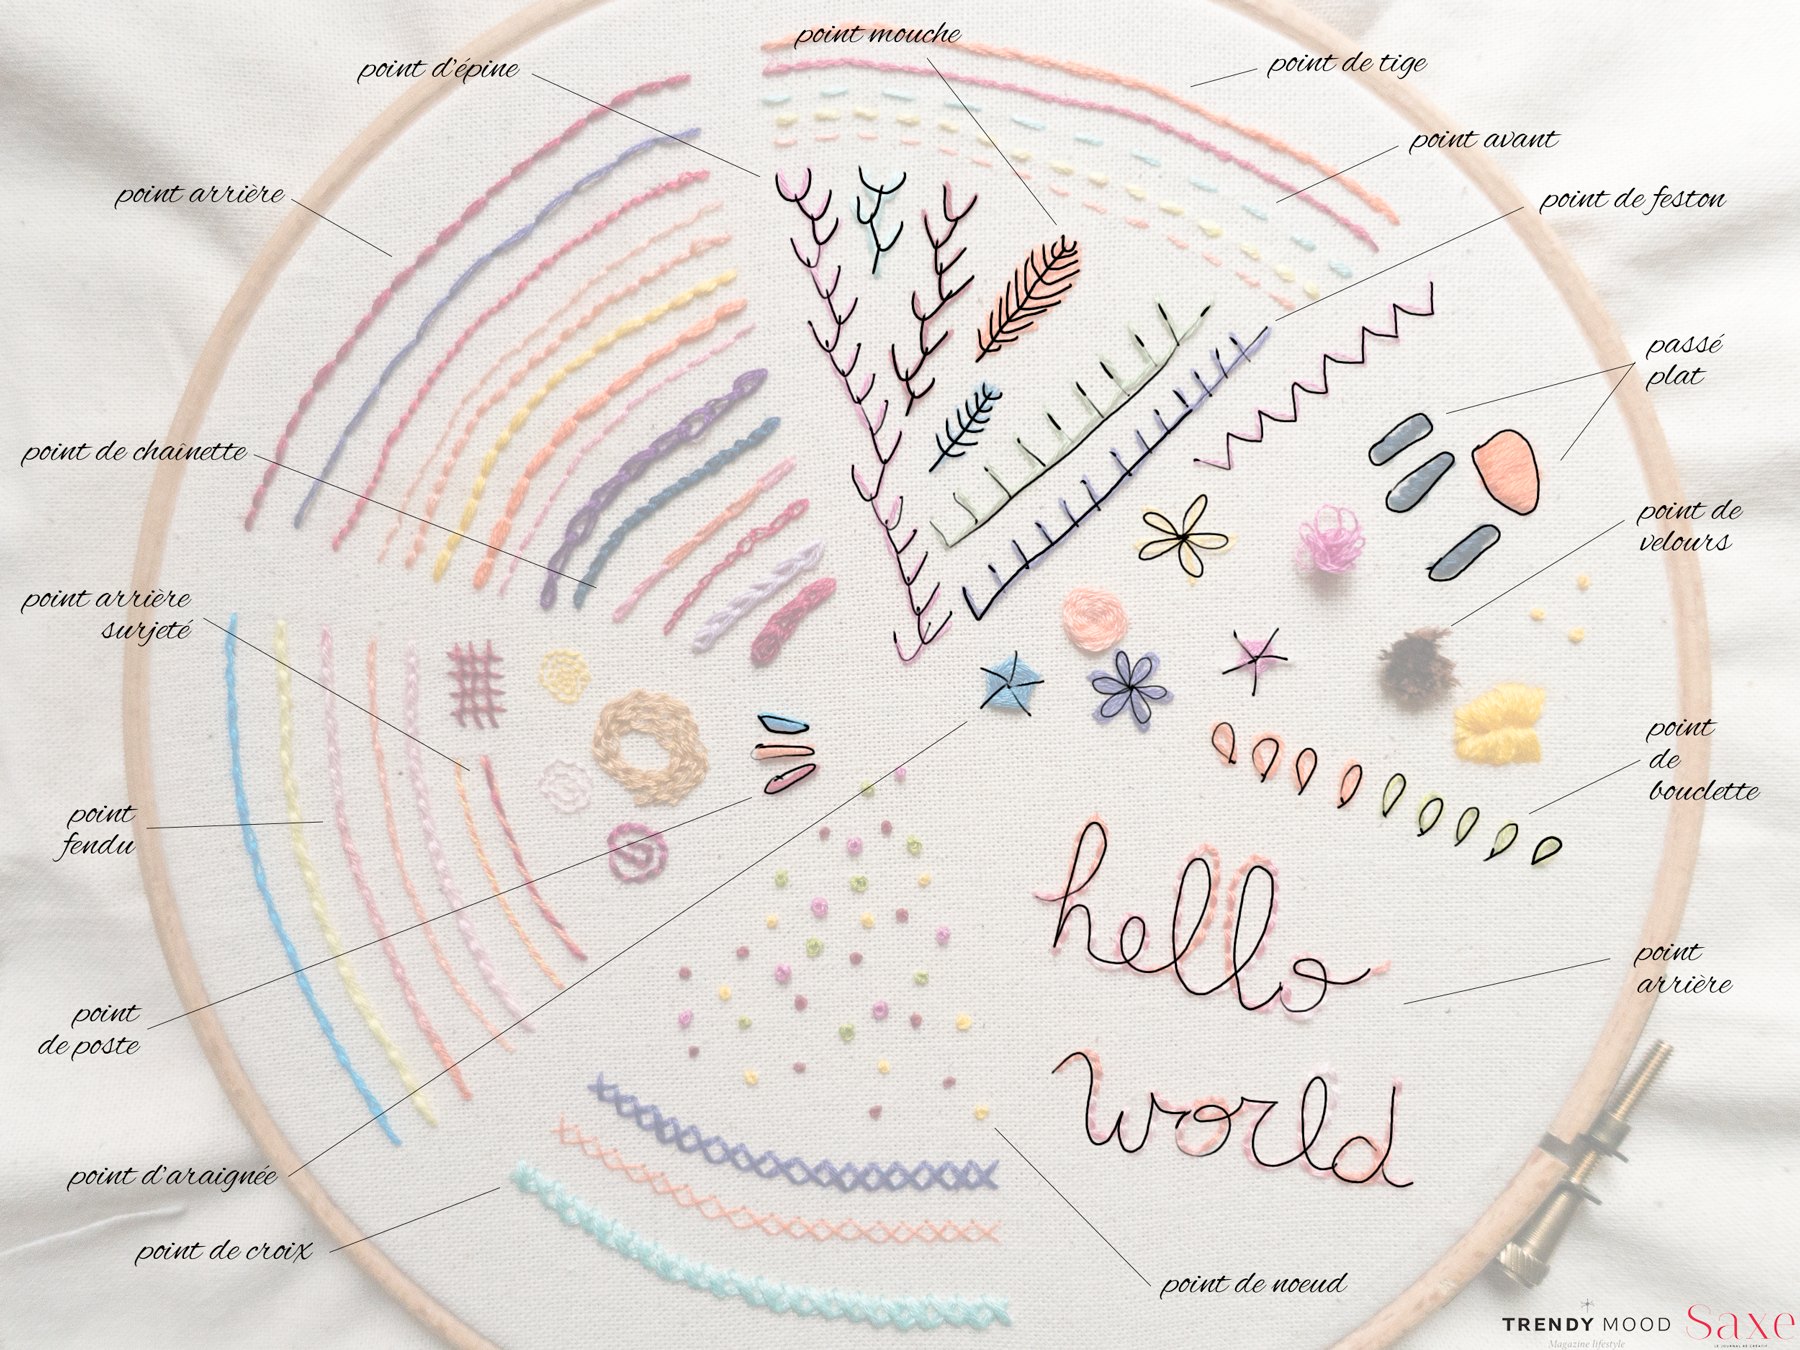 Embroidery-Sampler-Modele